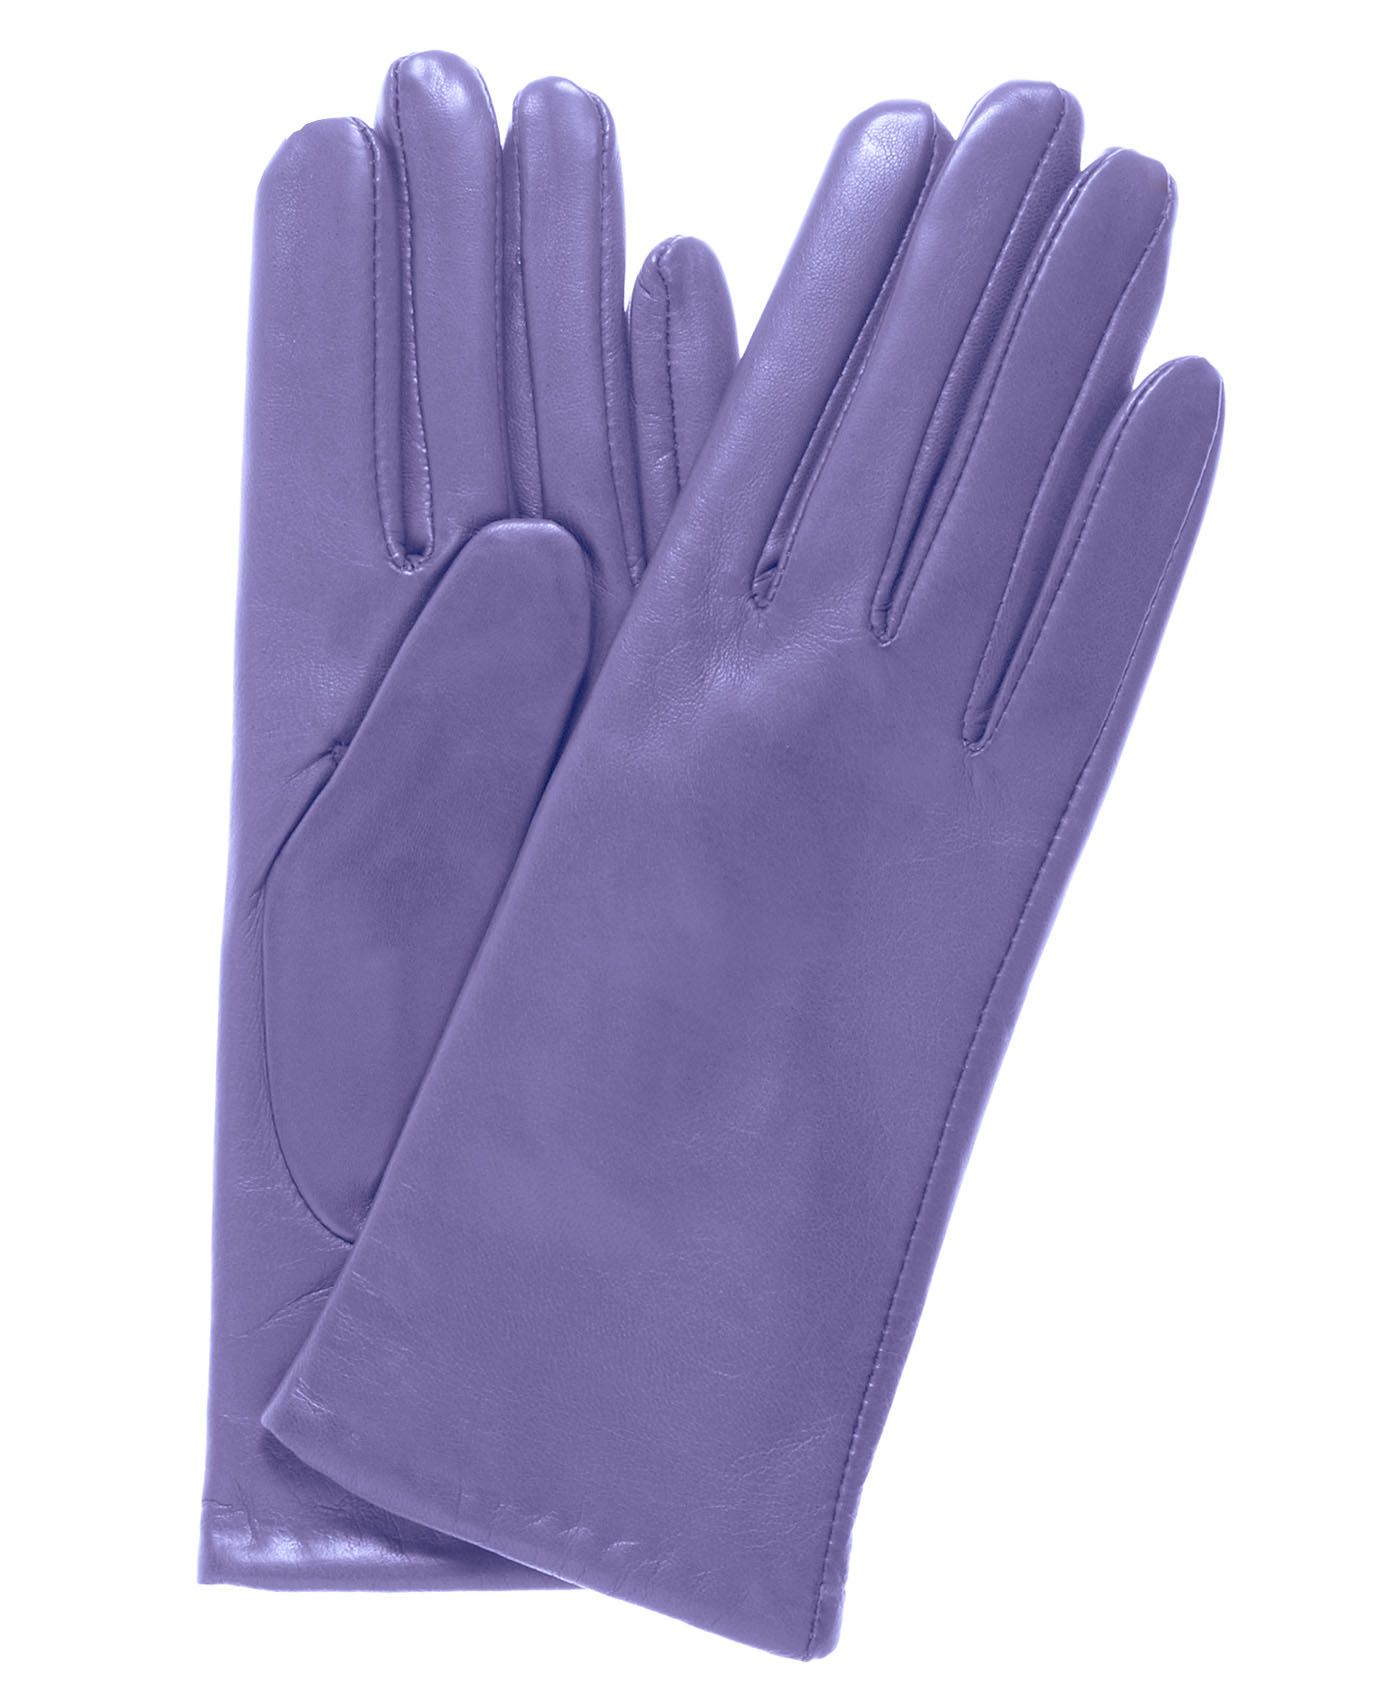 Women's Italian Cashmere Lined Lambskin Leather Gloves (Discontinued Colors) By Fratelli Orsini Everyday   Free USA Shipping at Leather Gloves Online